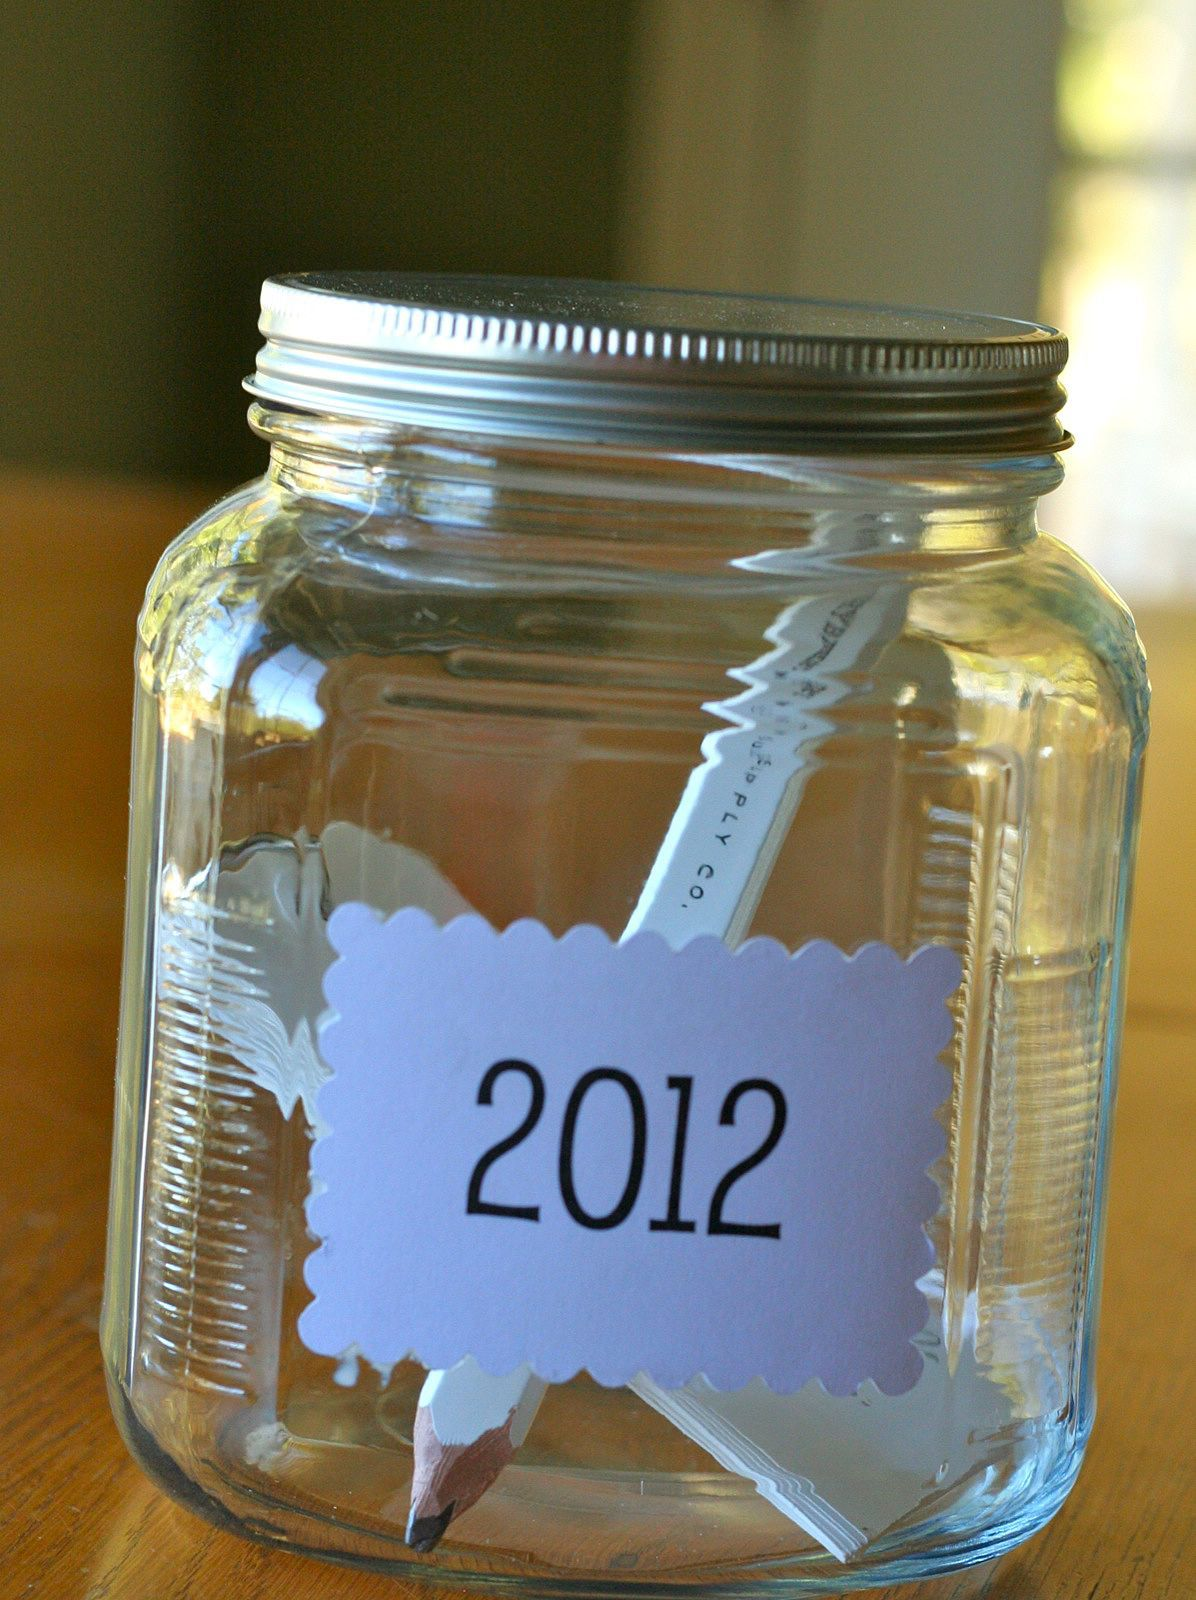 Throughout the year, write down memories that make you smile.  On Memory jar for the year...on New Year's Eve, open and re-read all of the good stuff that made the year wonderful.